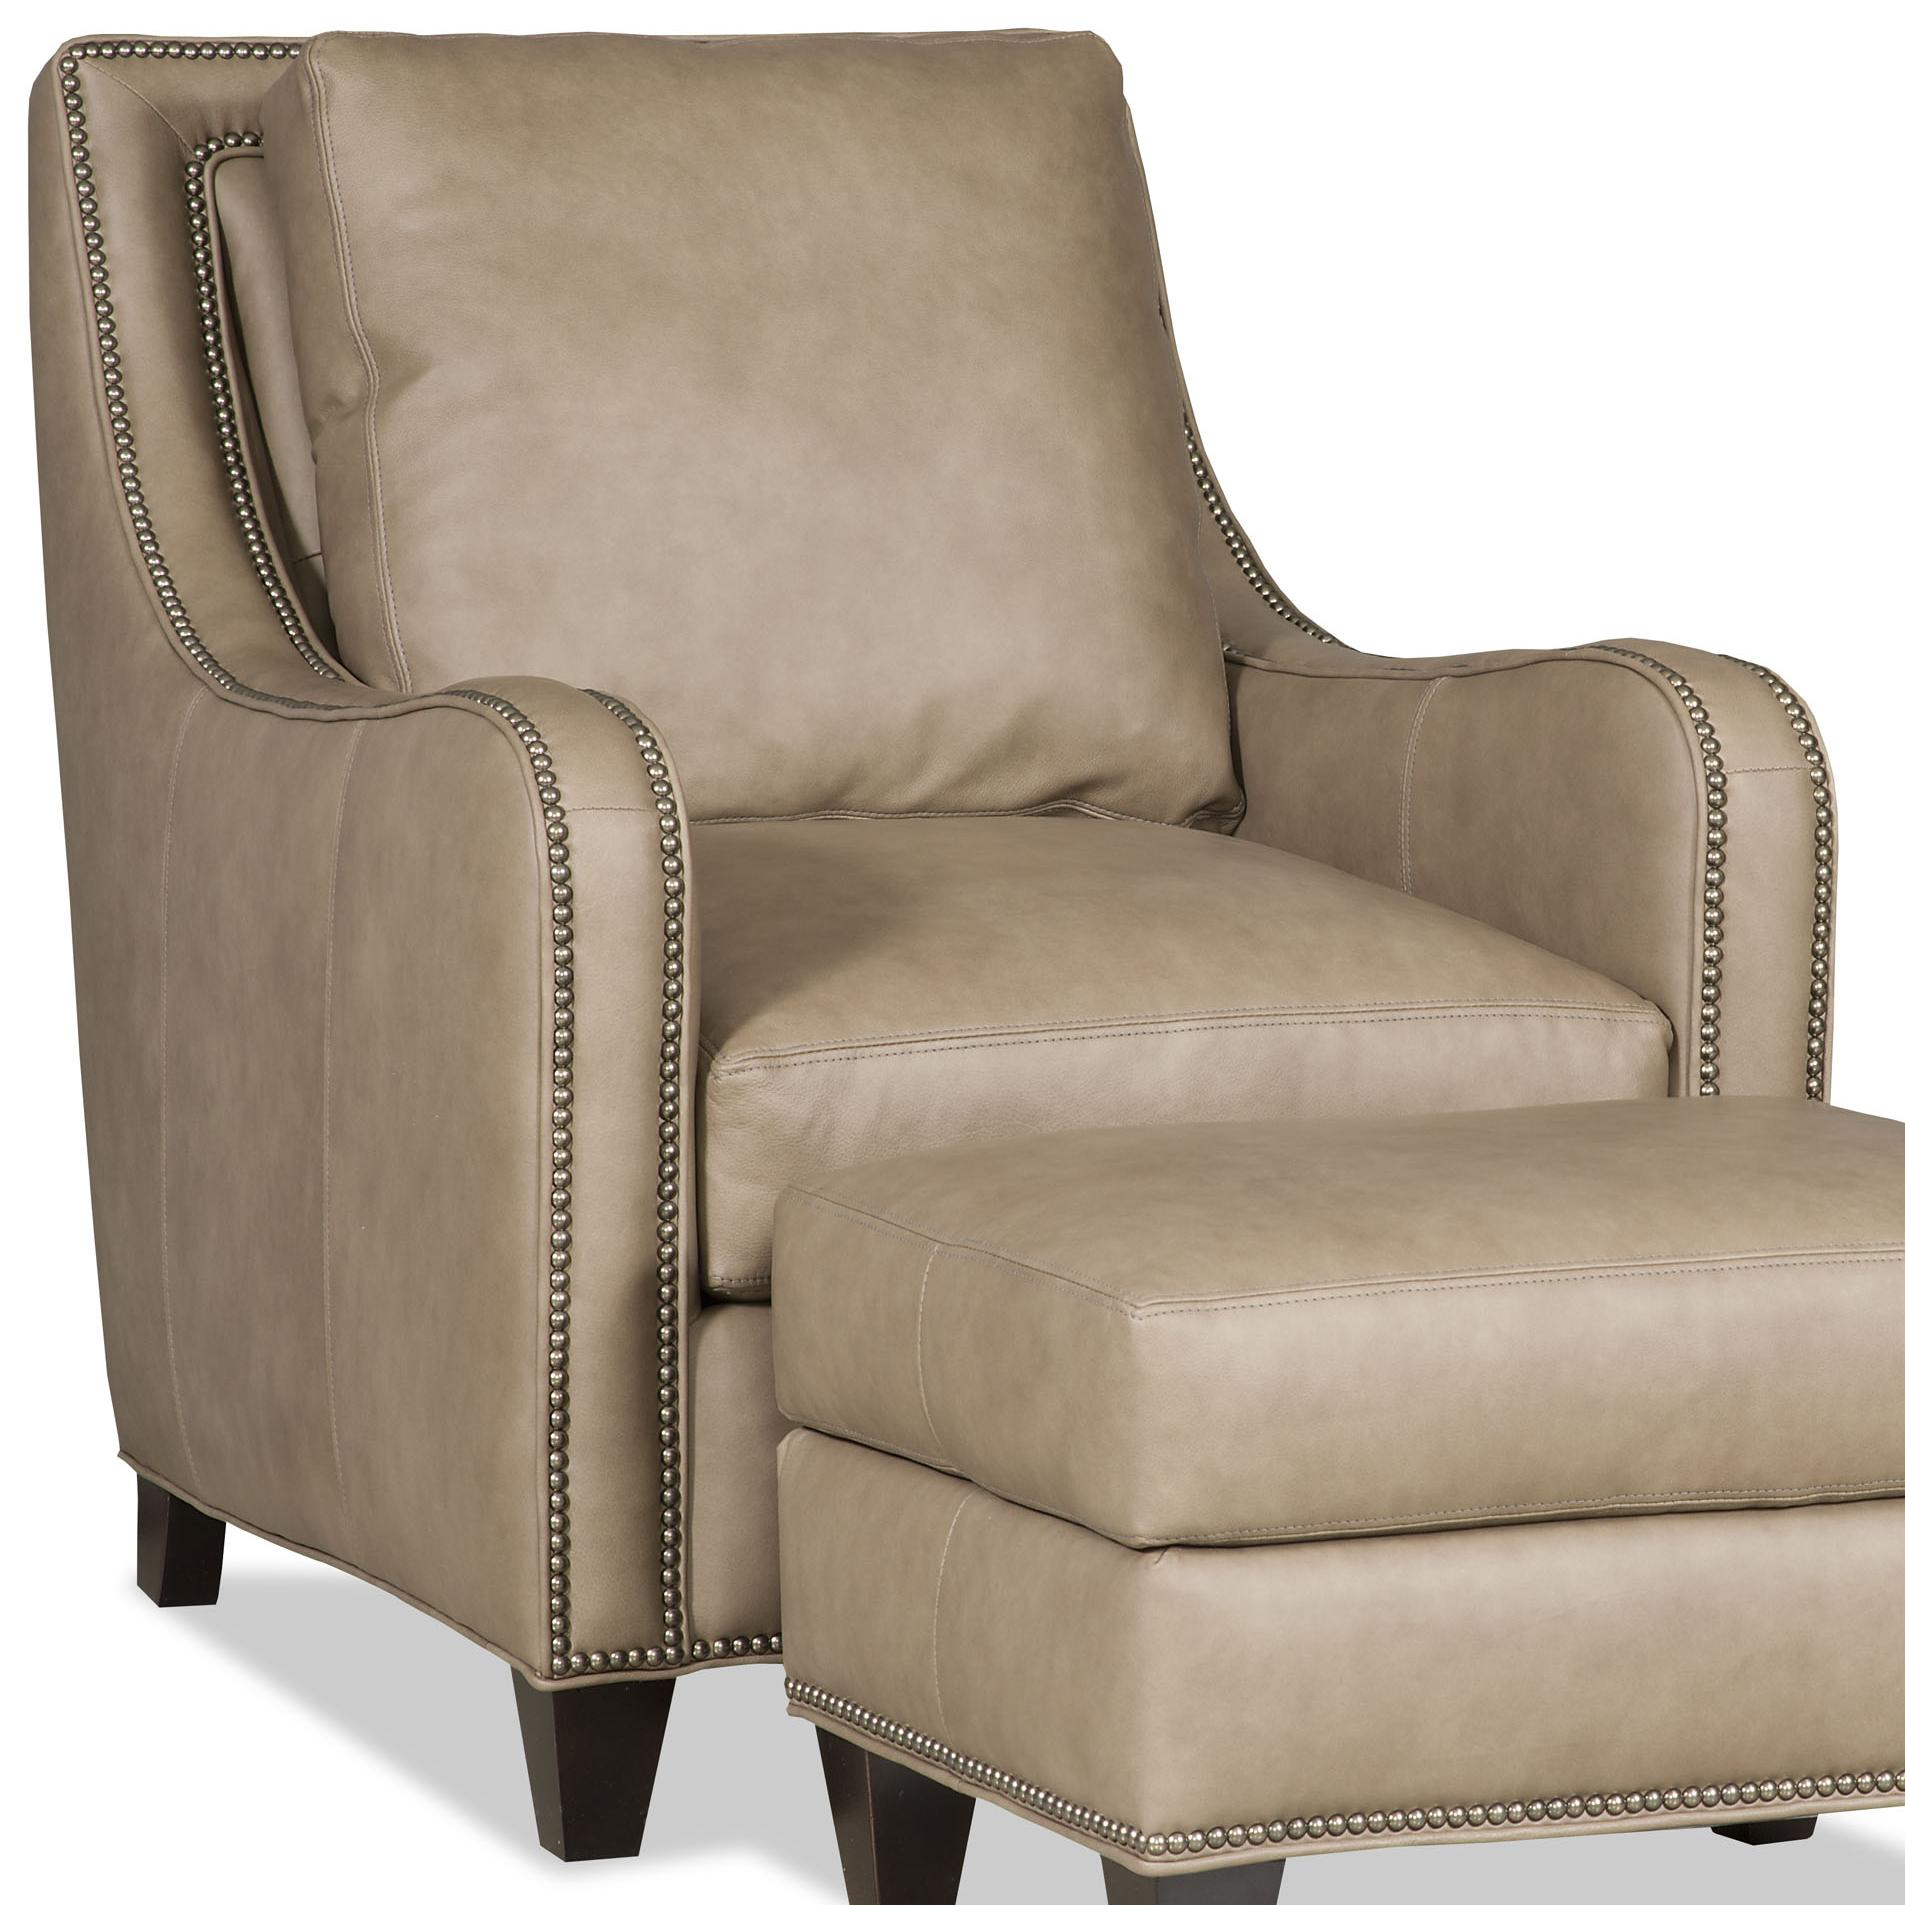 Greco Chair by Bradington Young at Alison Craig Home Furnishings